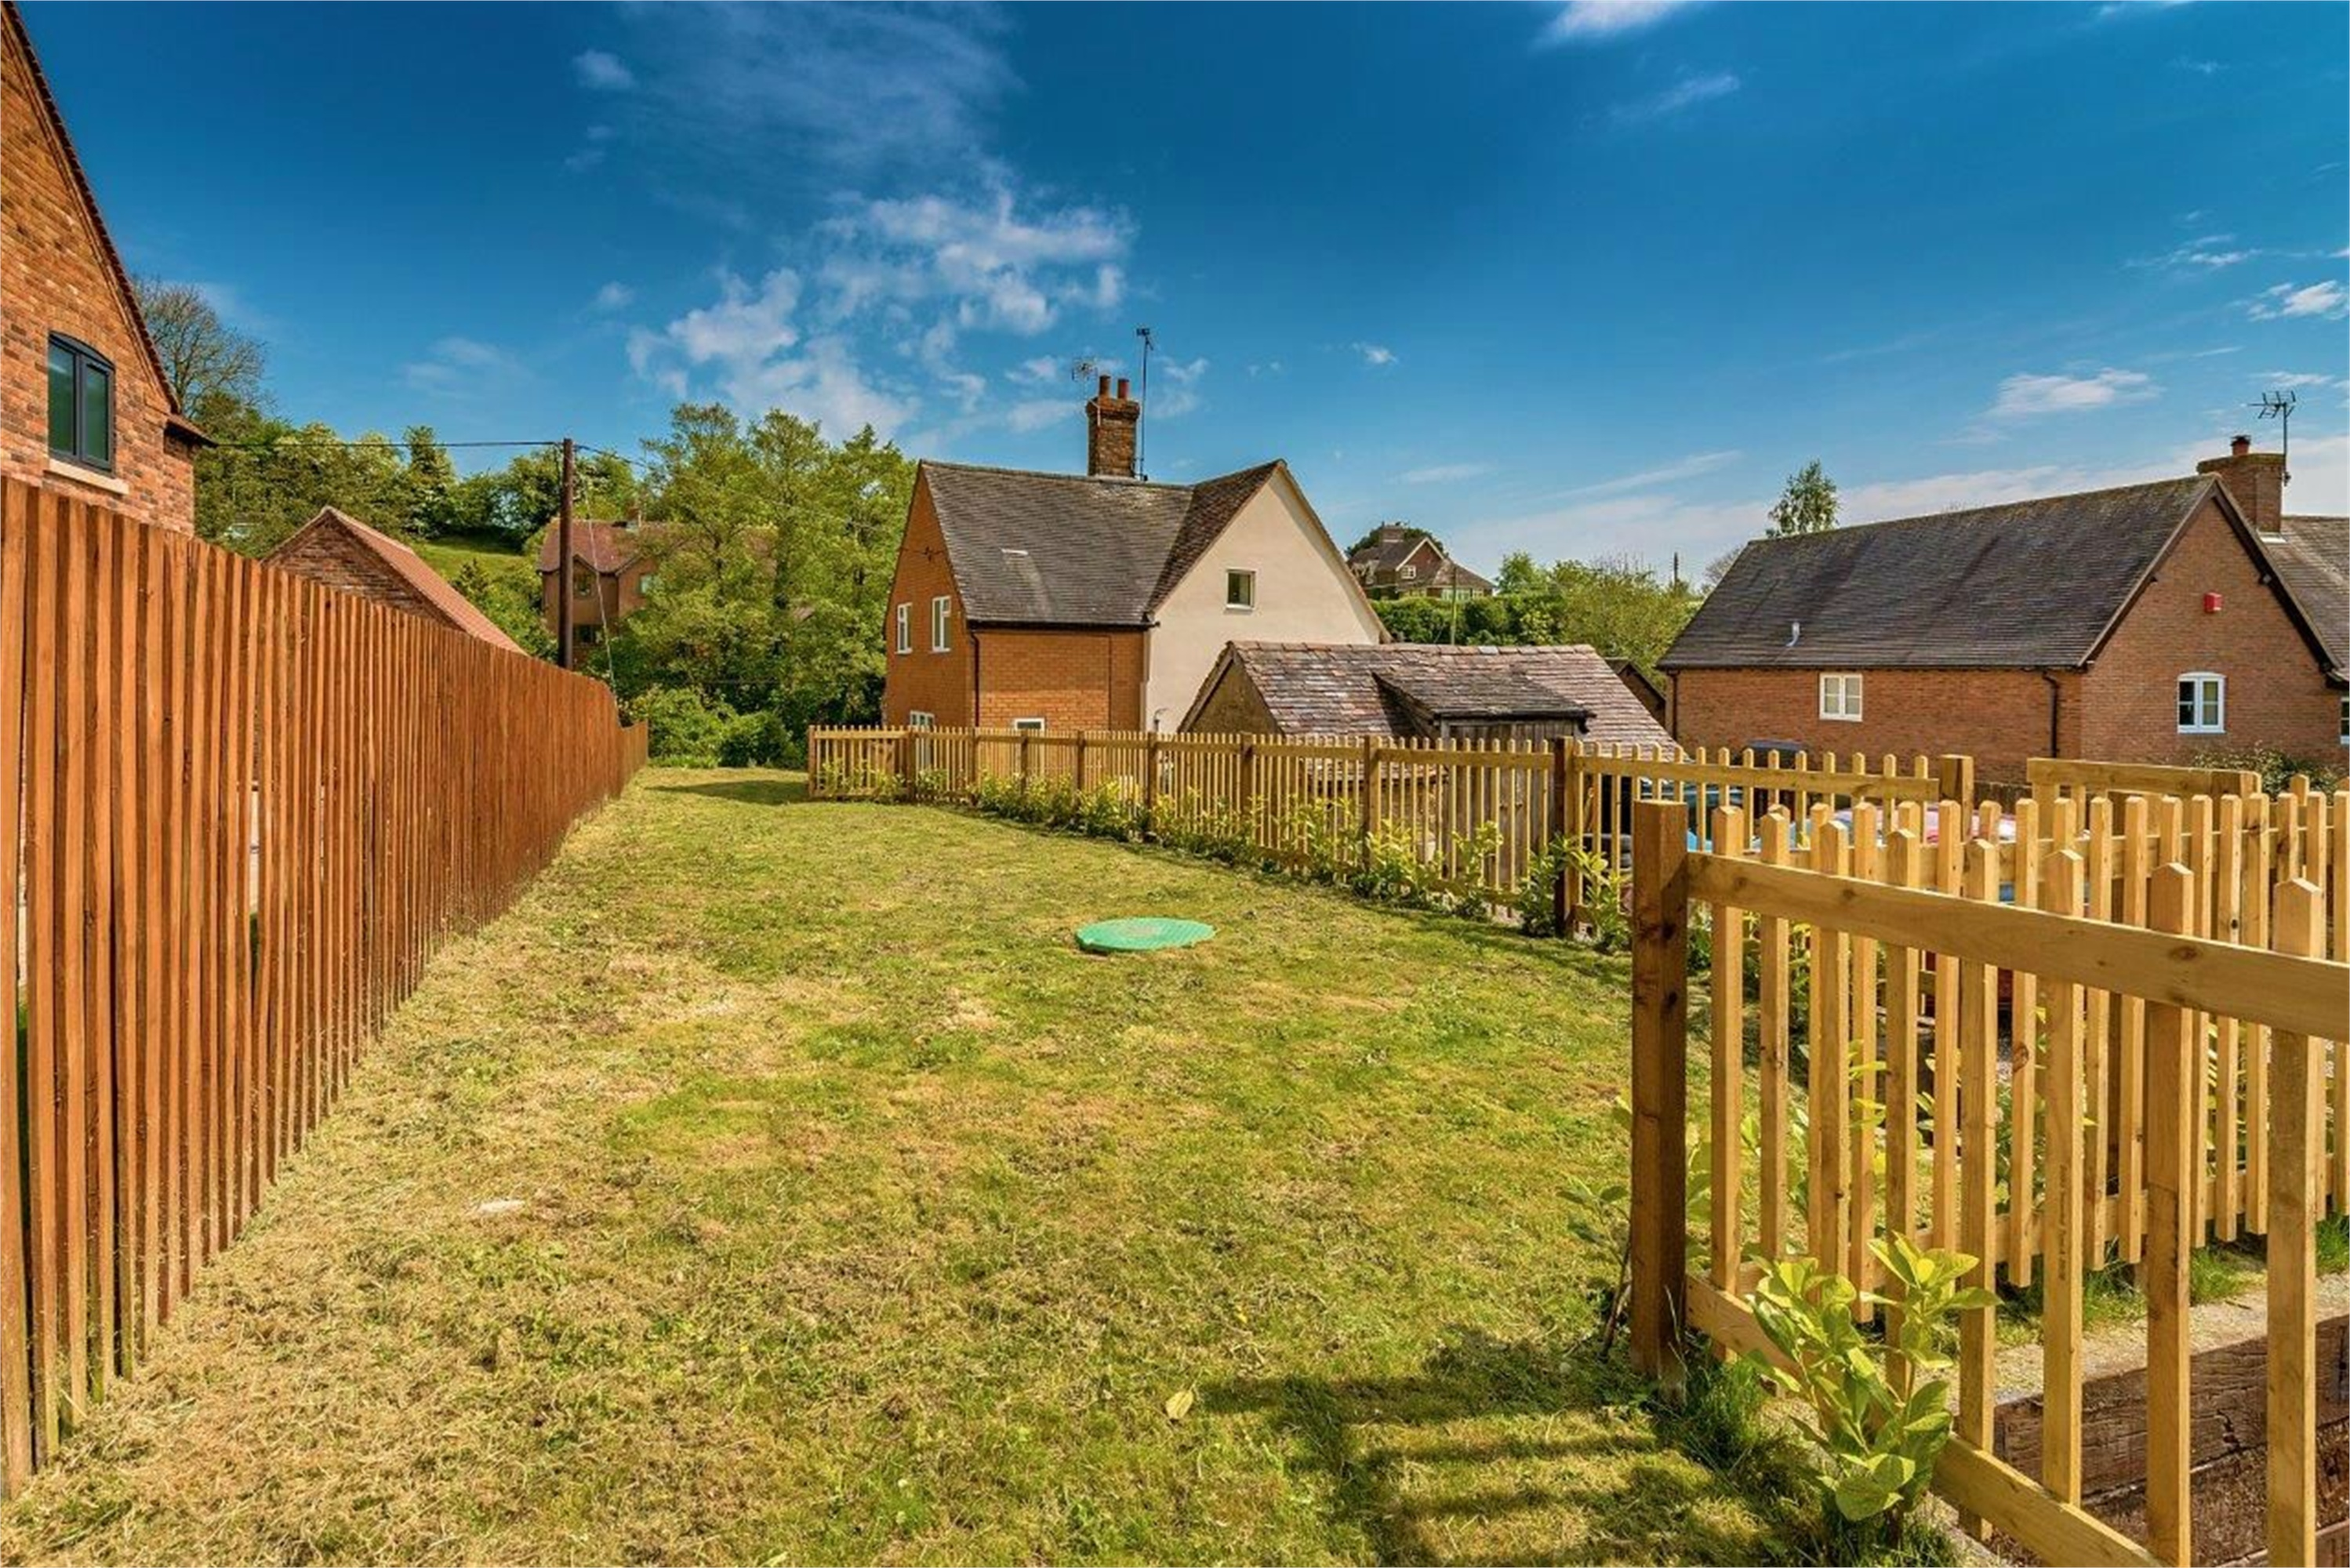 3 Bedrooms Semi Detached House for sale in 3 Brockton, Much Wenlock, Shropshire, TF13